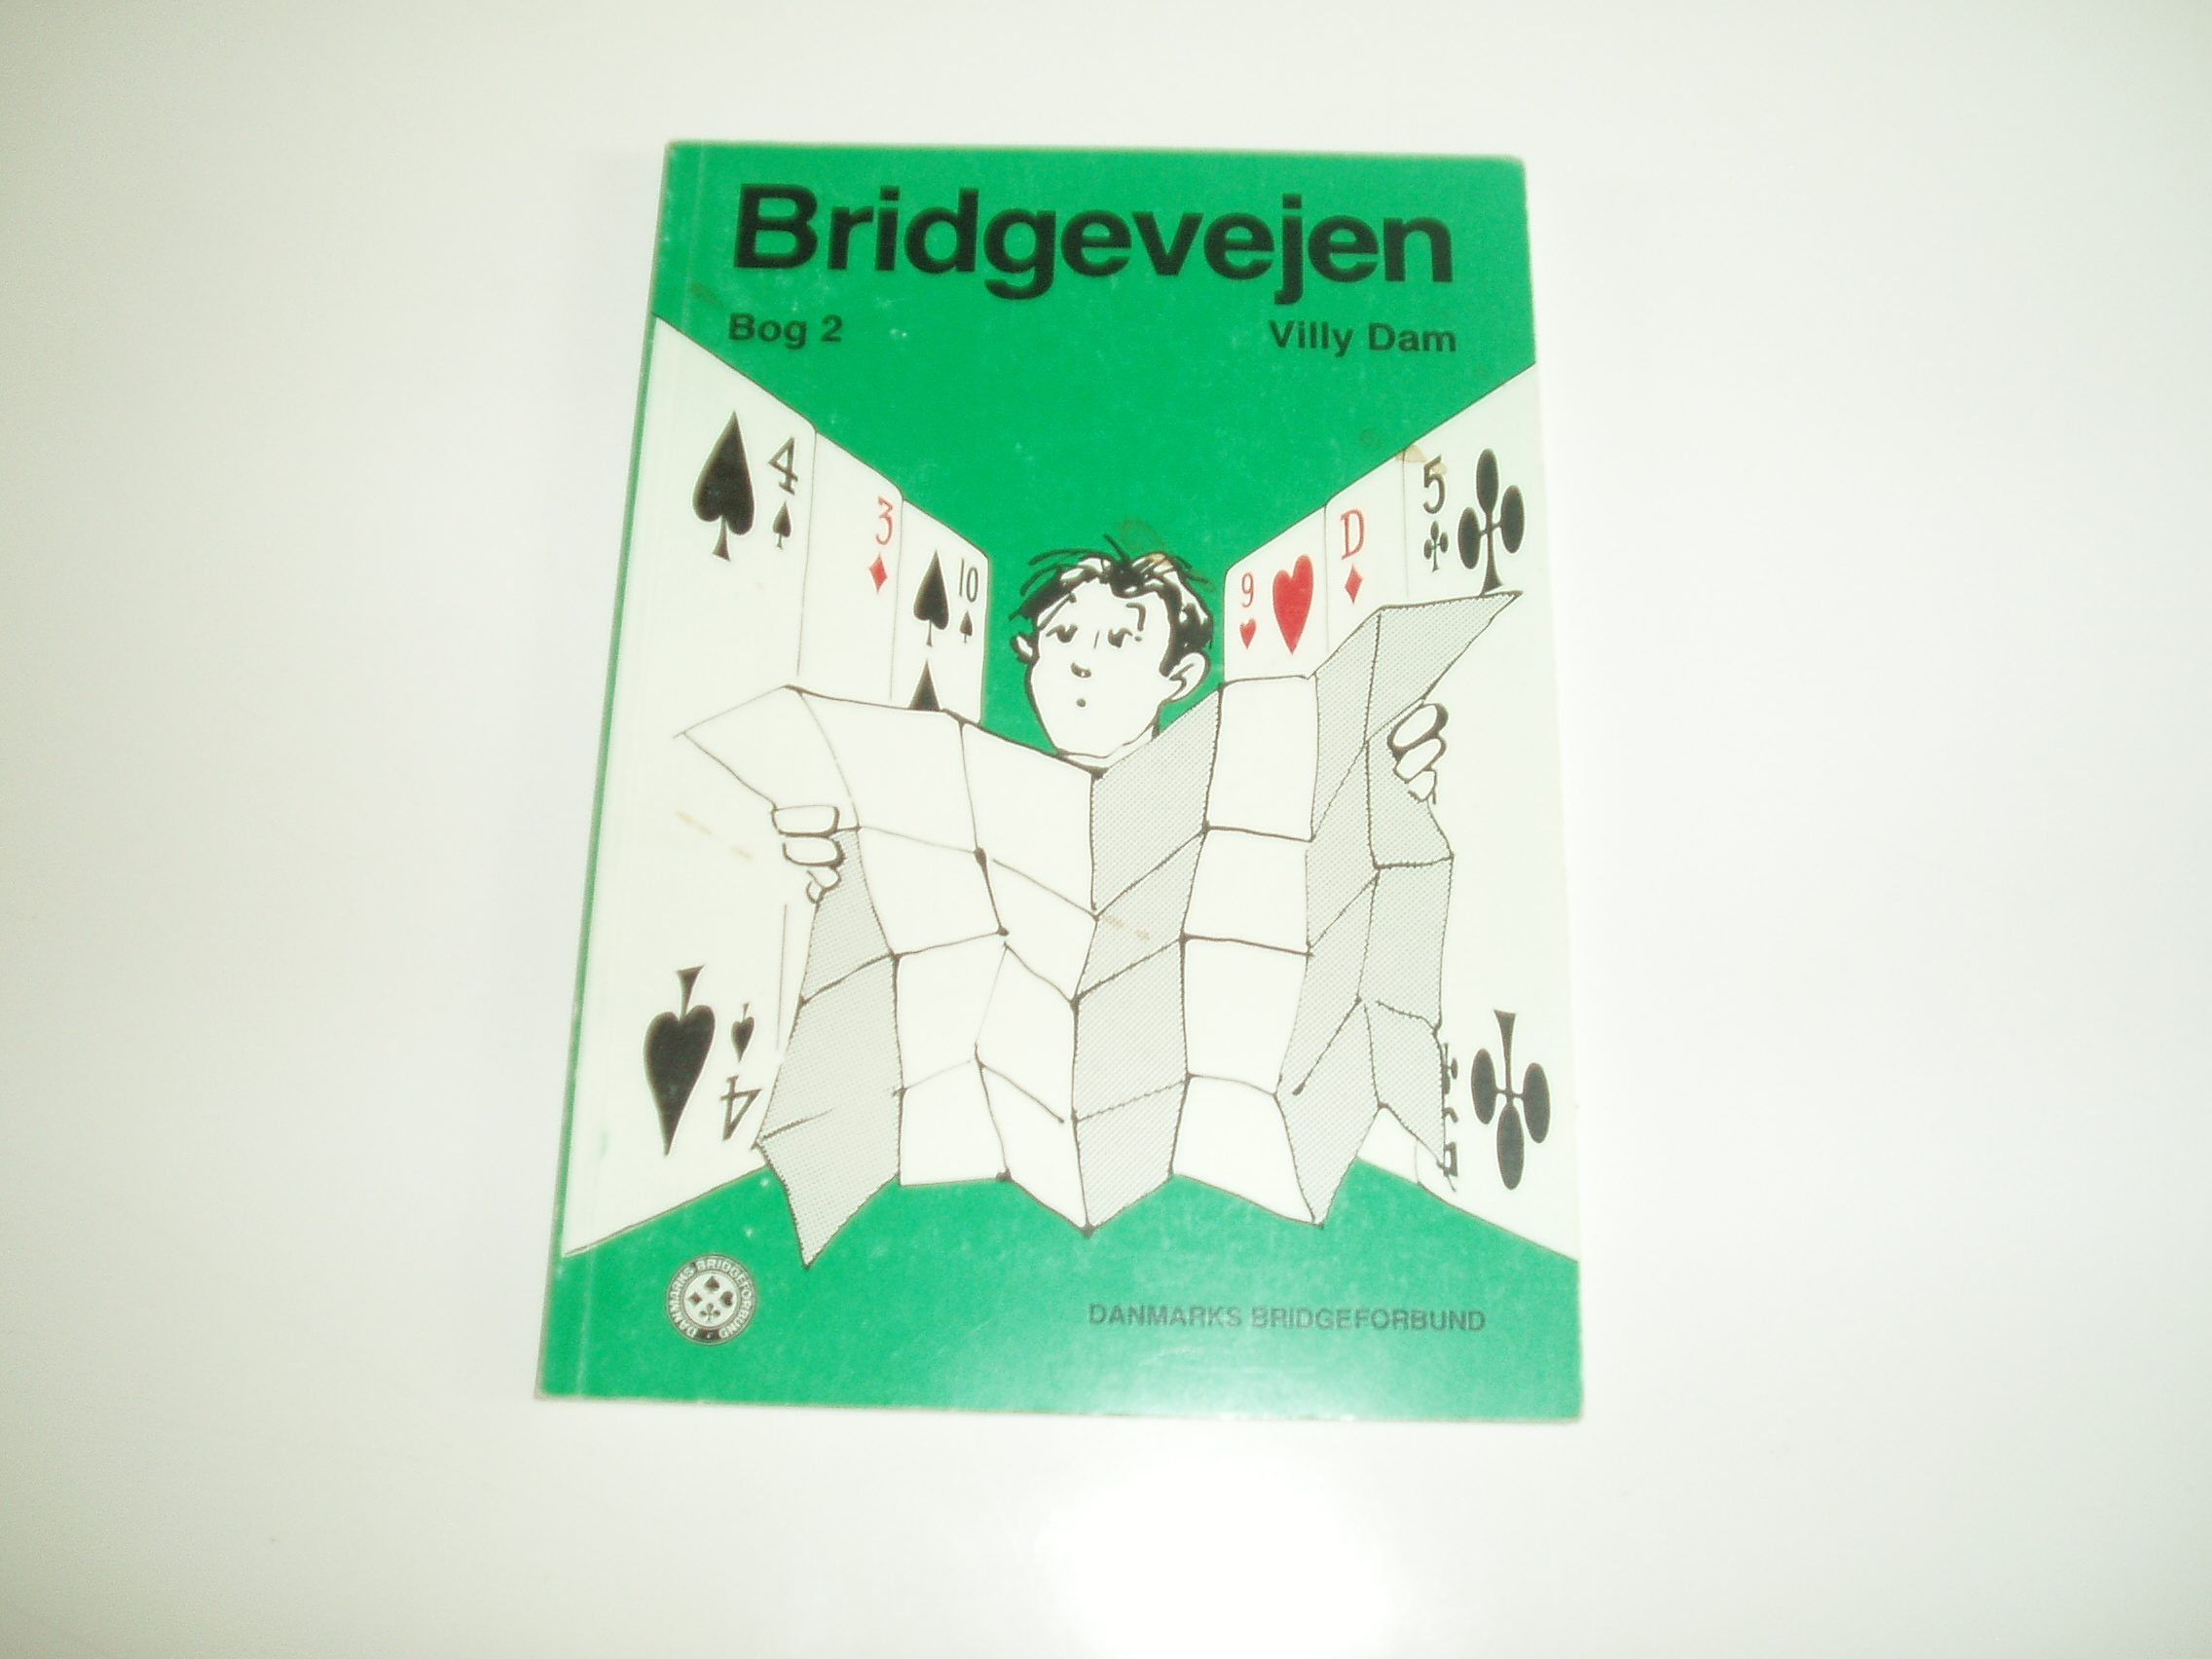 Bridgevejen, 2